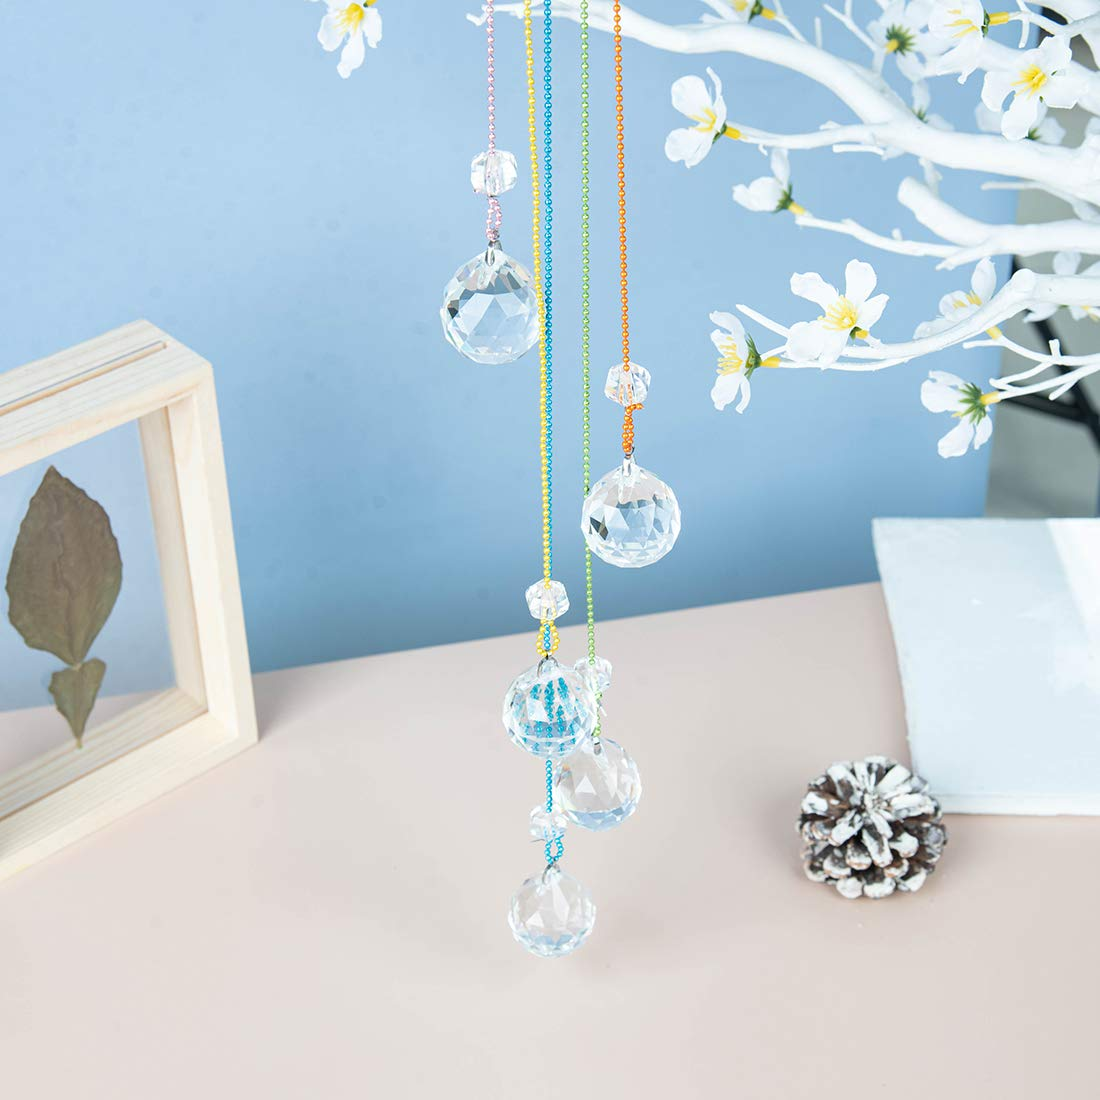 WEISIPU Hanging Crystals Suncatcher - Rainbow Crystal Ornament Crystal Ball Prism Feng Shui Crystals Suncatchers for Garden, Window Decoration